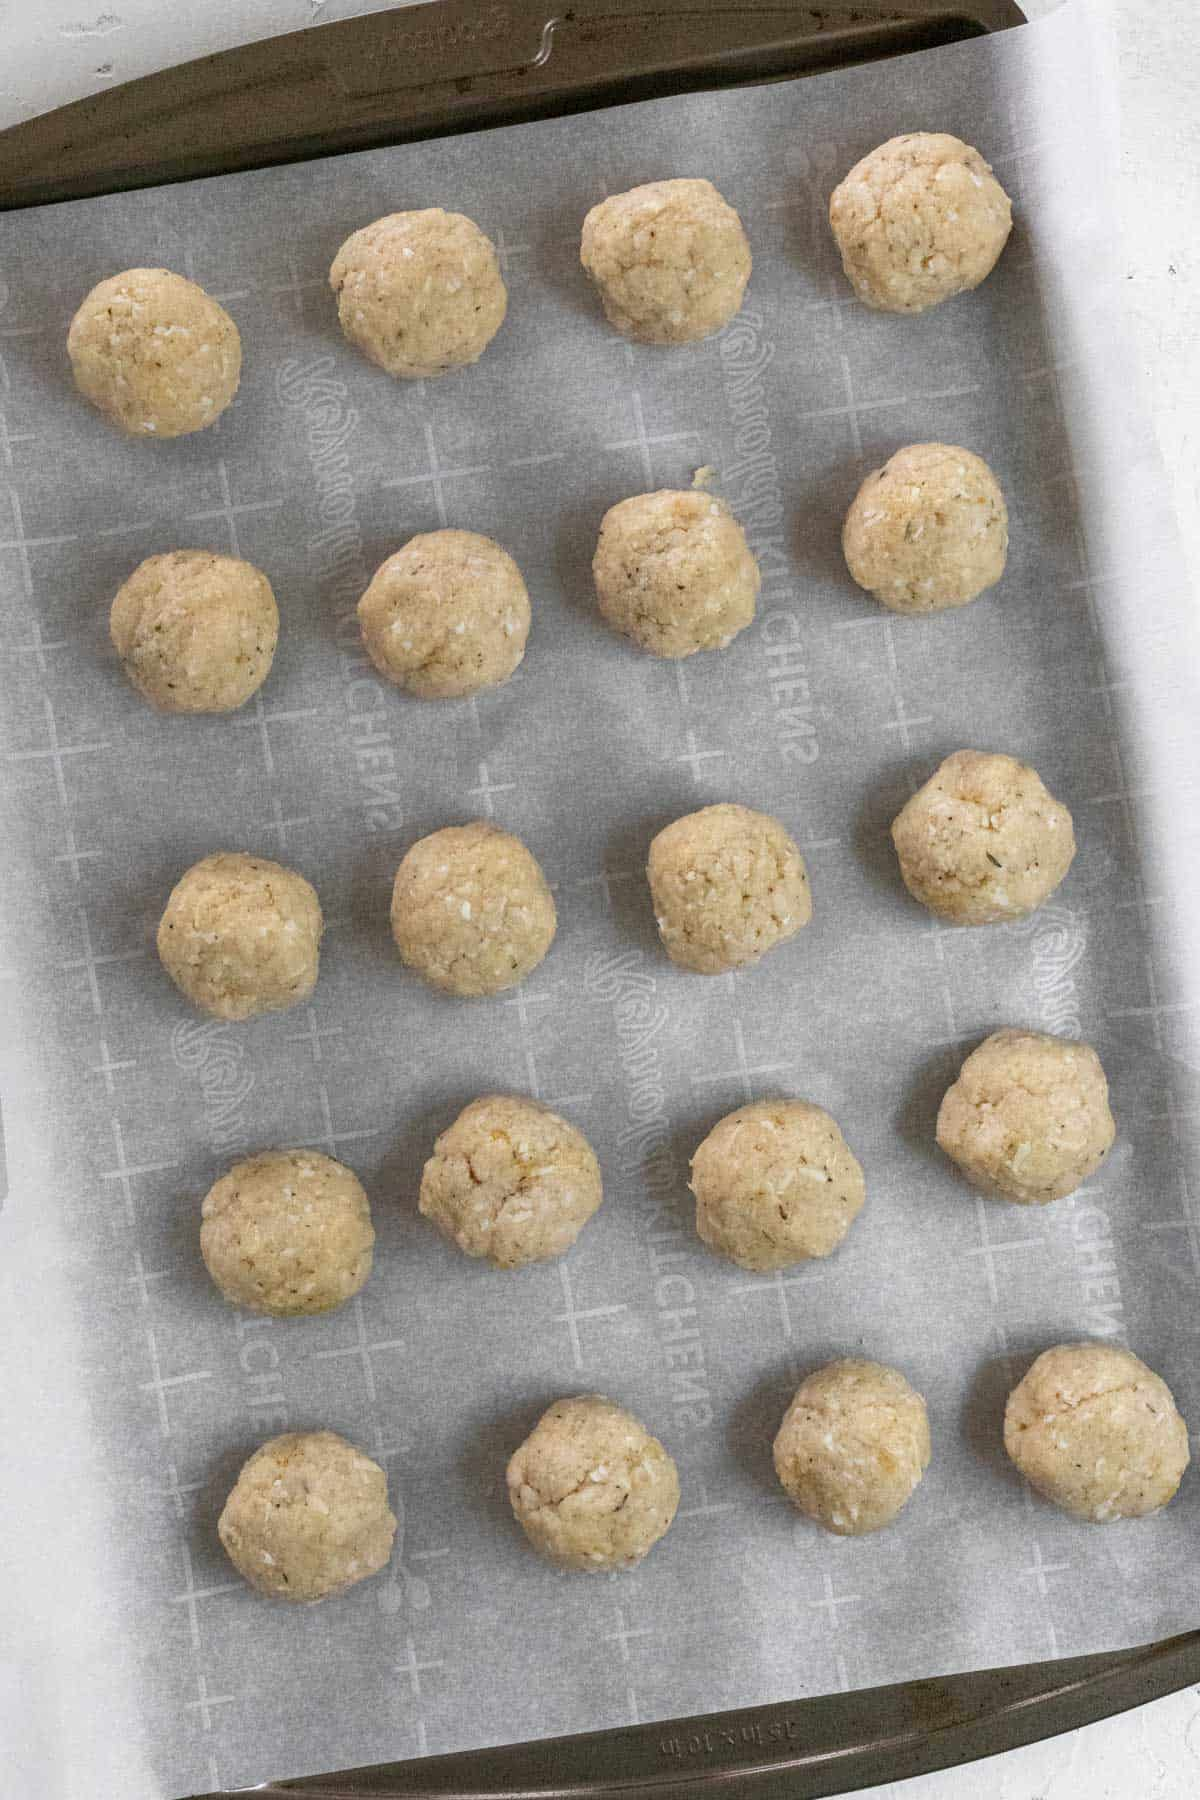 Raw meatball mixture formed into meatballs and lined up on a sheet pan.